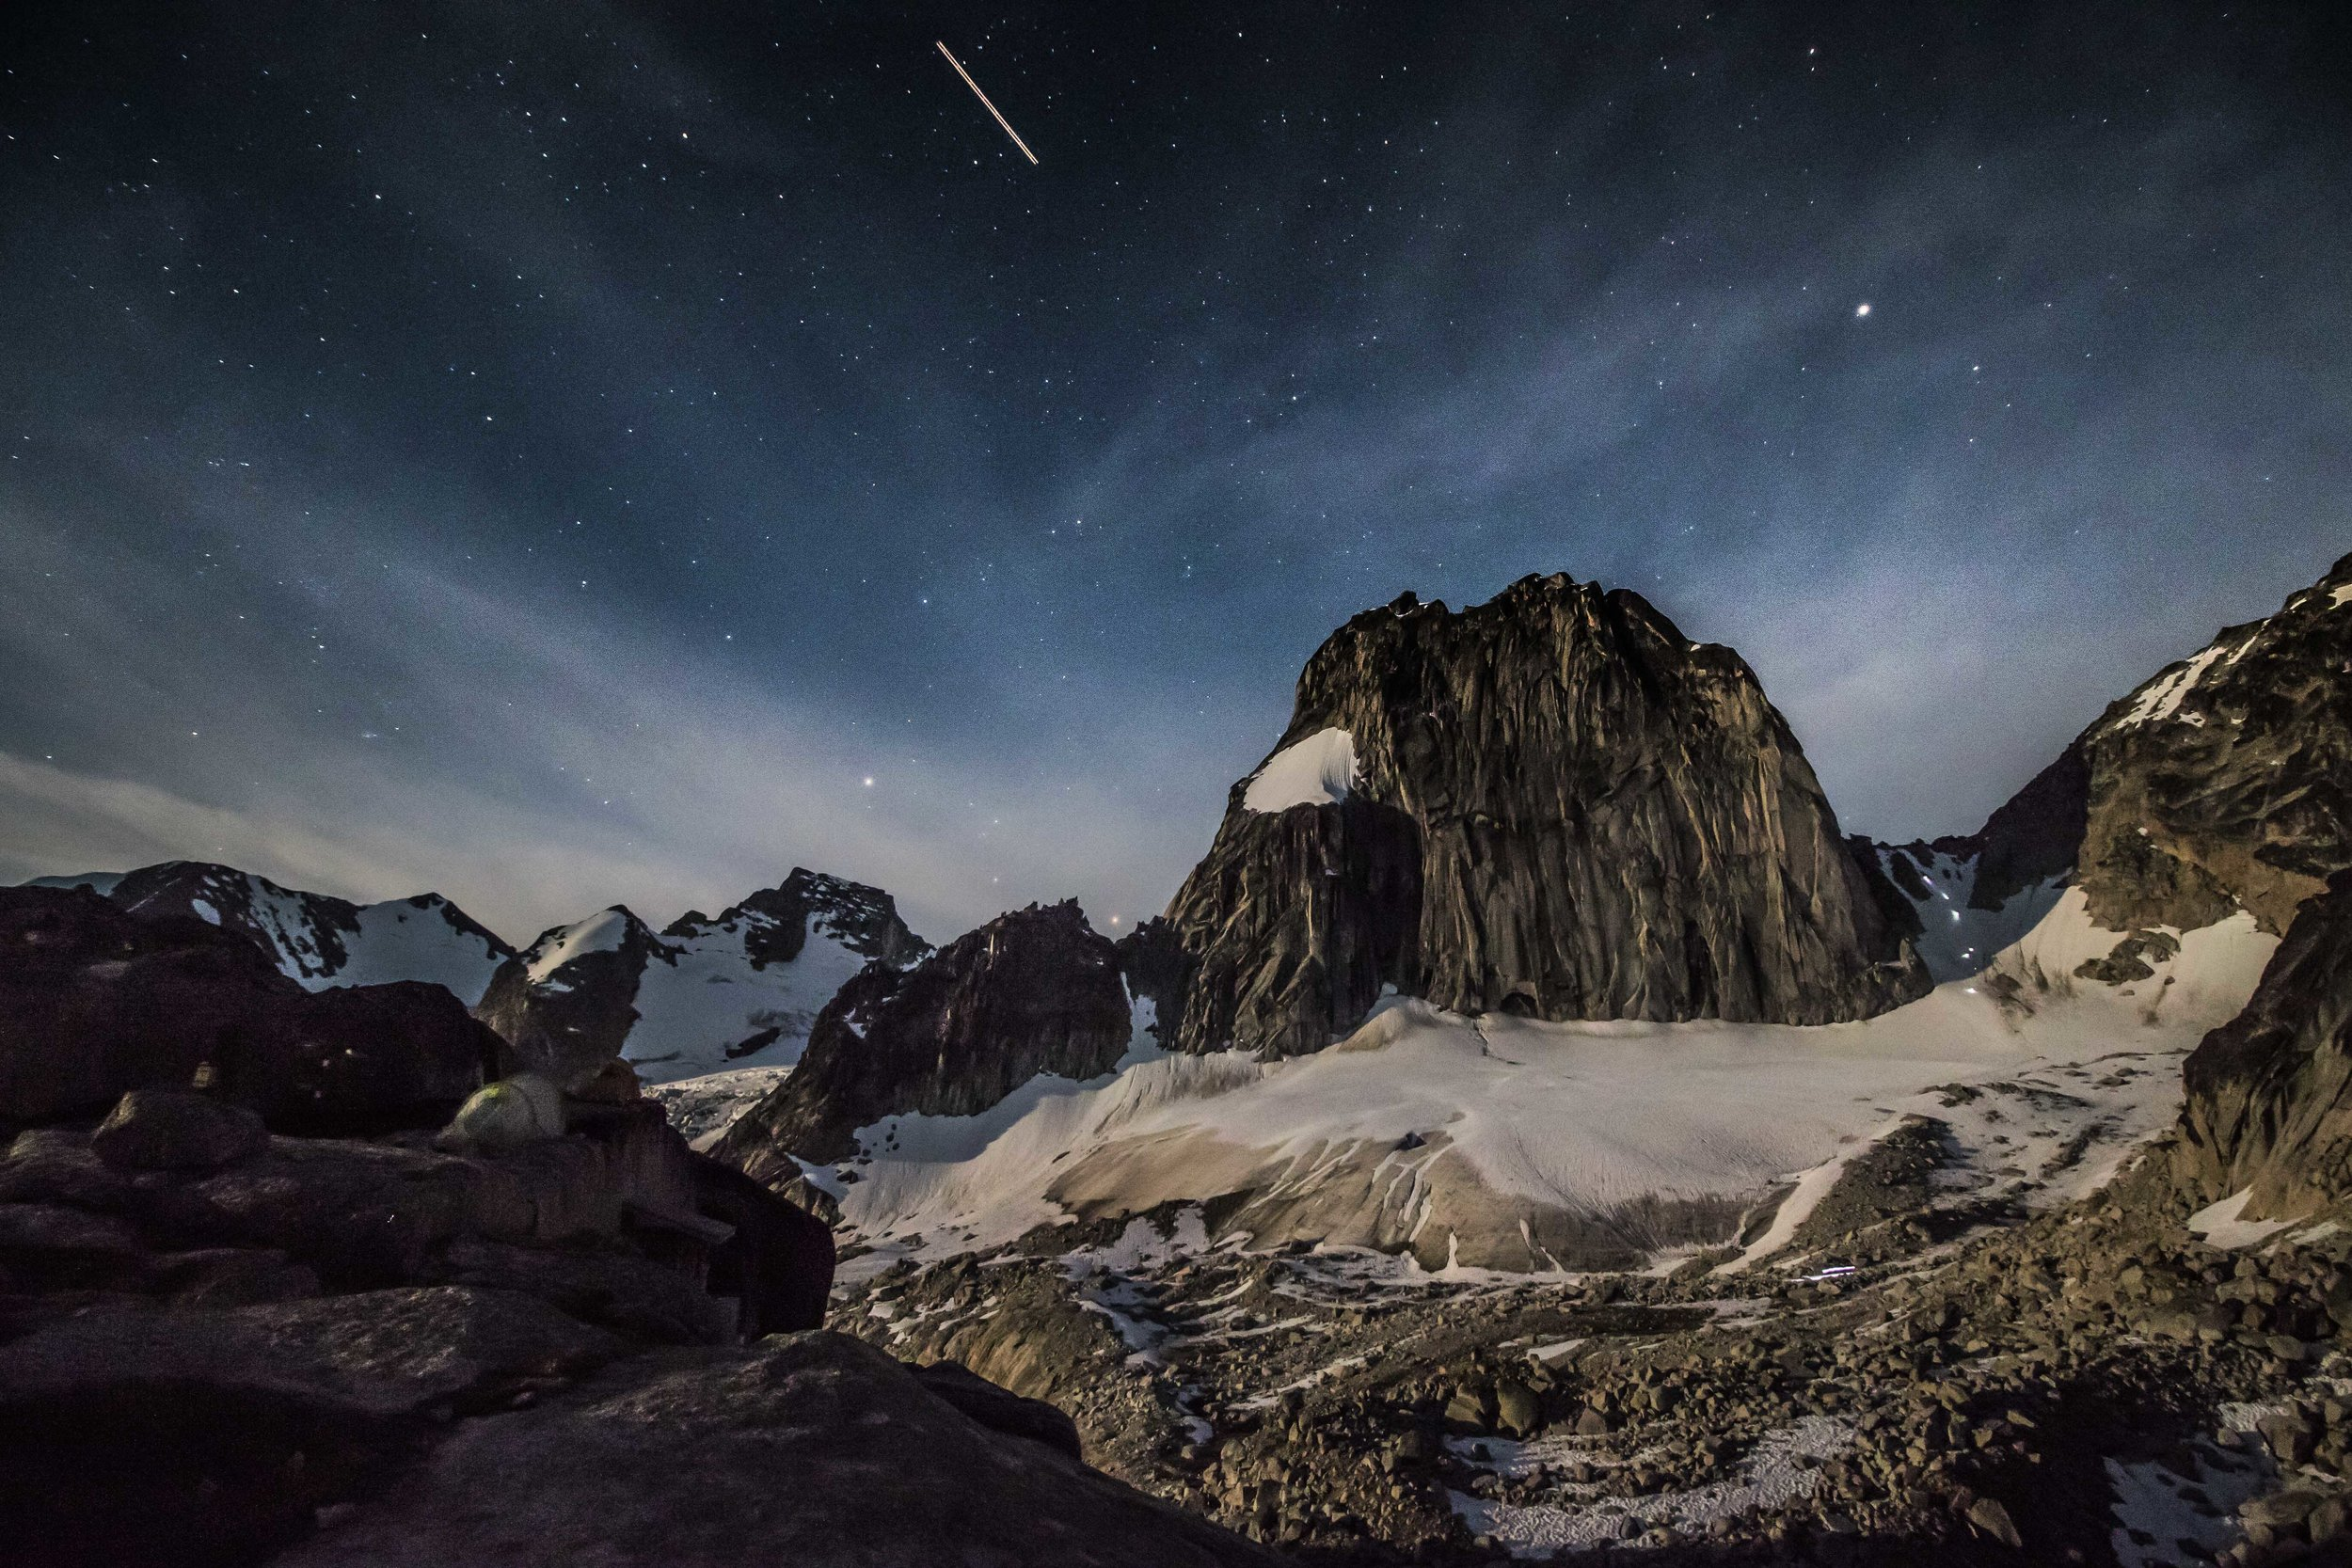 Looking at Snowpatch Spire from Applebee Camp, climbers descending the col by headlamp.